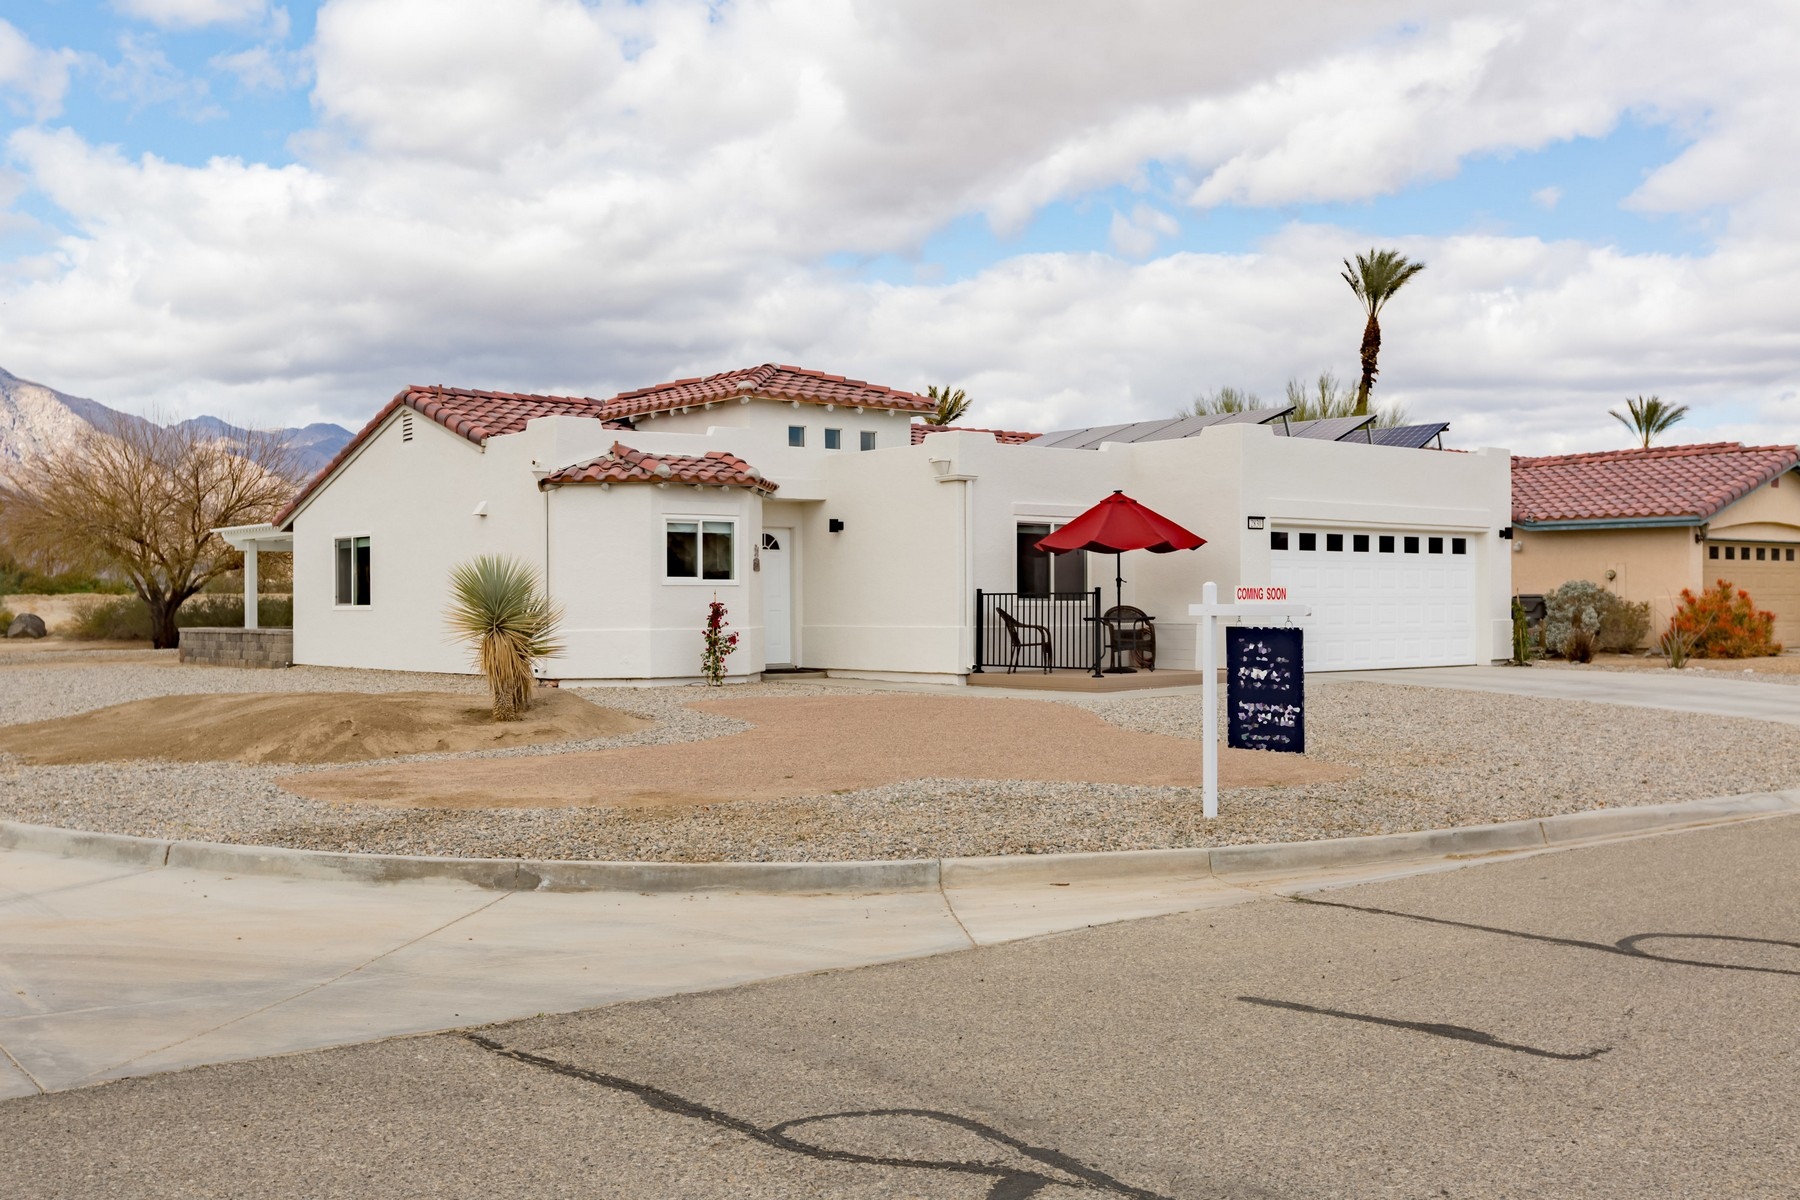 Single Family Home for Sale at 2830 Back Nine Drive 2830 Back Nine Drive Borrego Springs, California 92086 United States